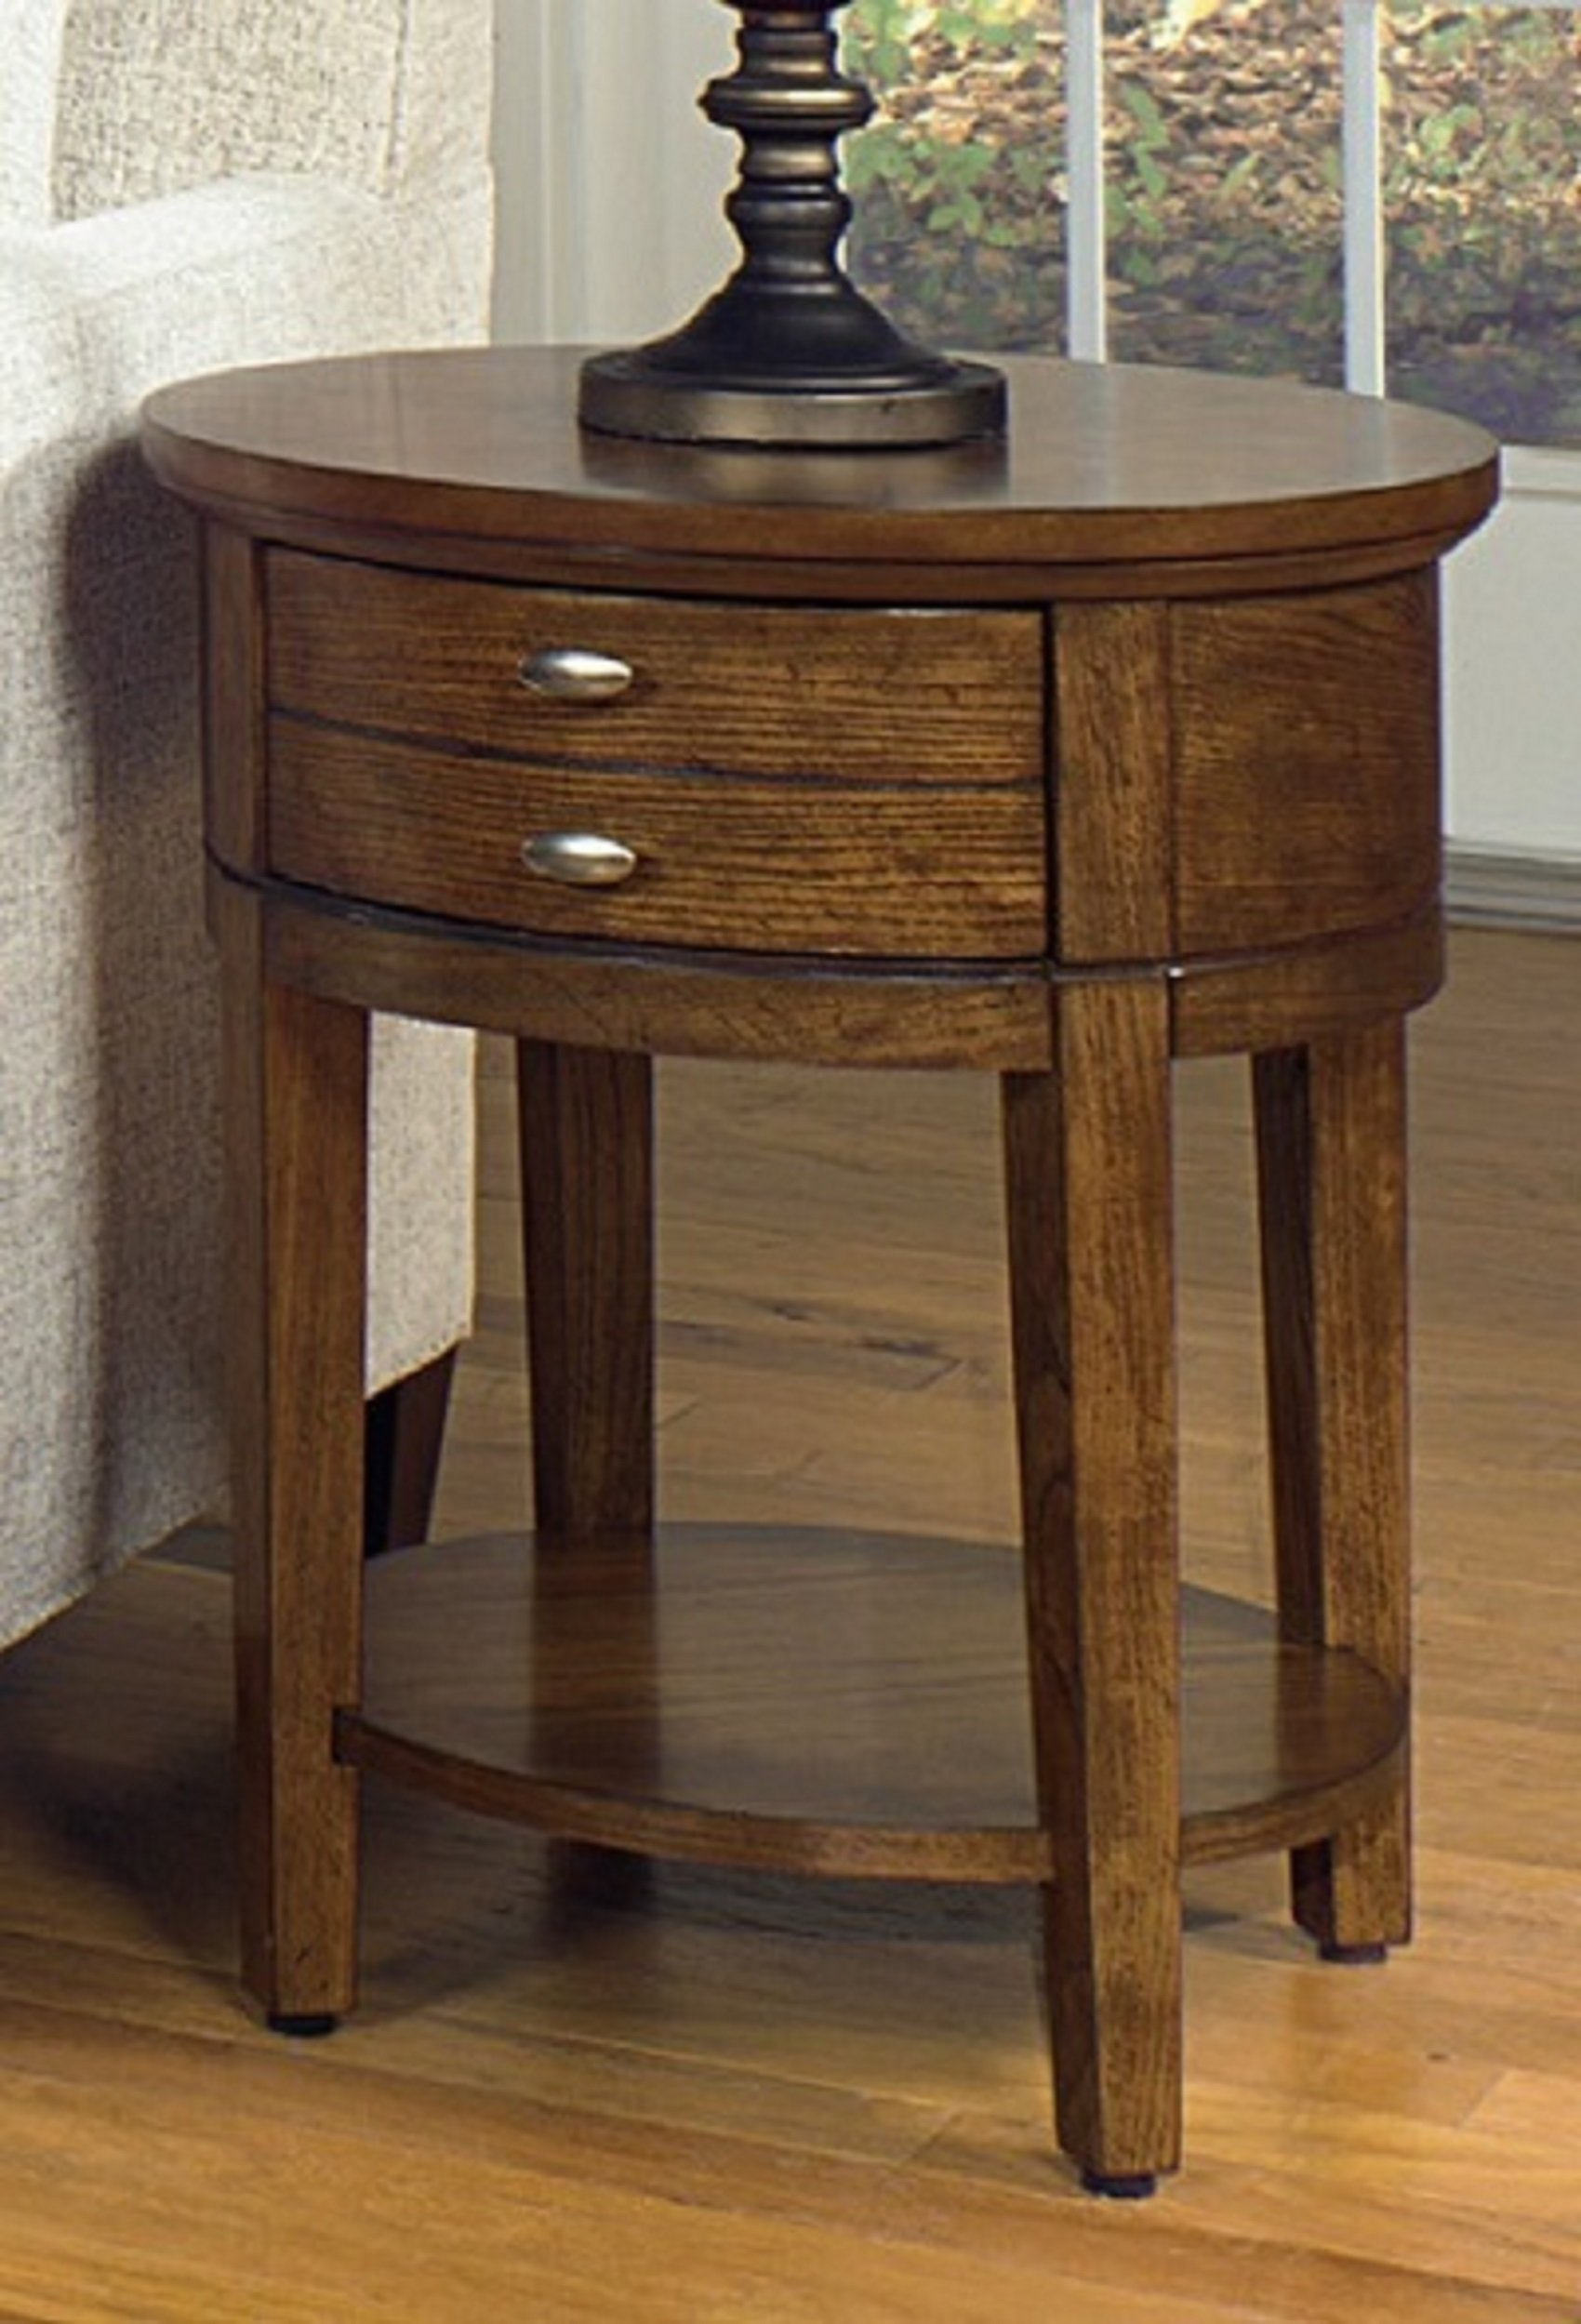 ranchero end table joss main weybossett patchen accent home decor mirrors coffee designs bronze patio side mahogany bedside tables west elm wood art brass base small round vinyl